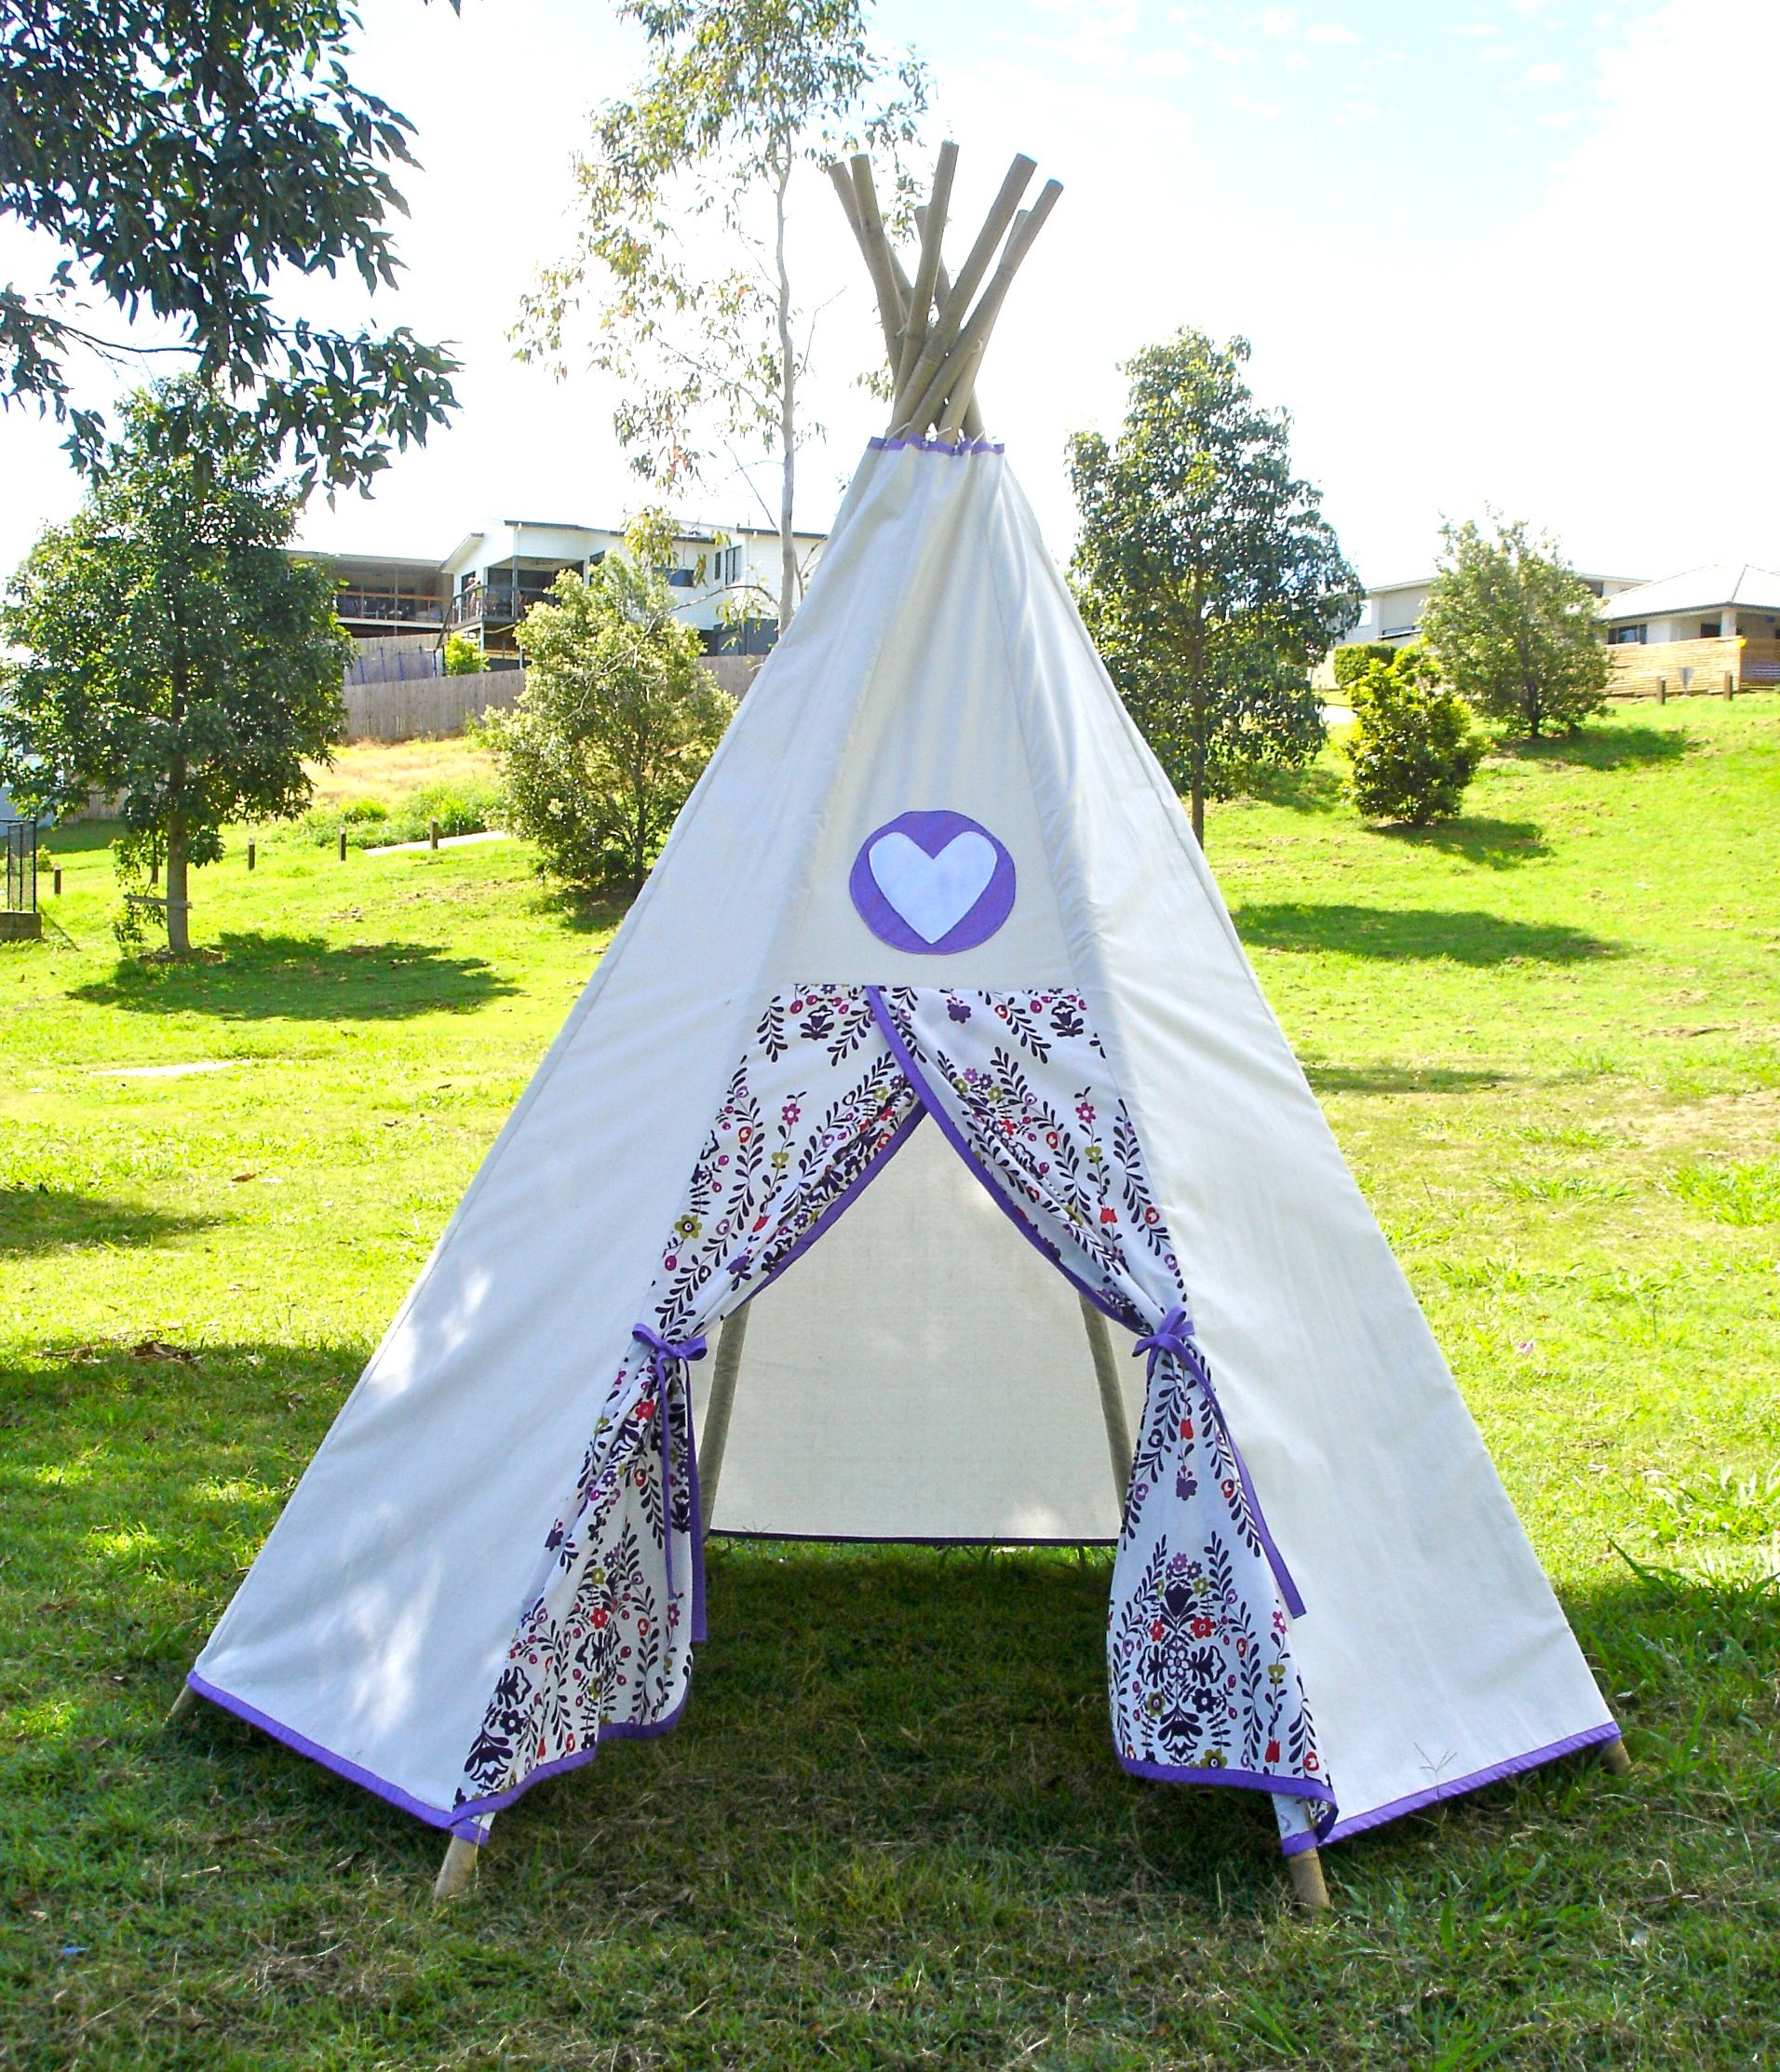 For Sale Children S Teepee Be Creative With Amy